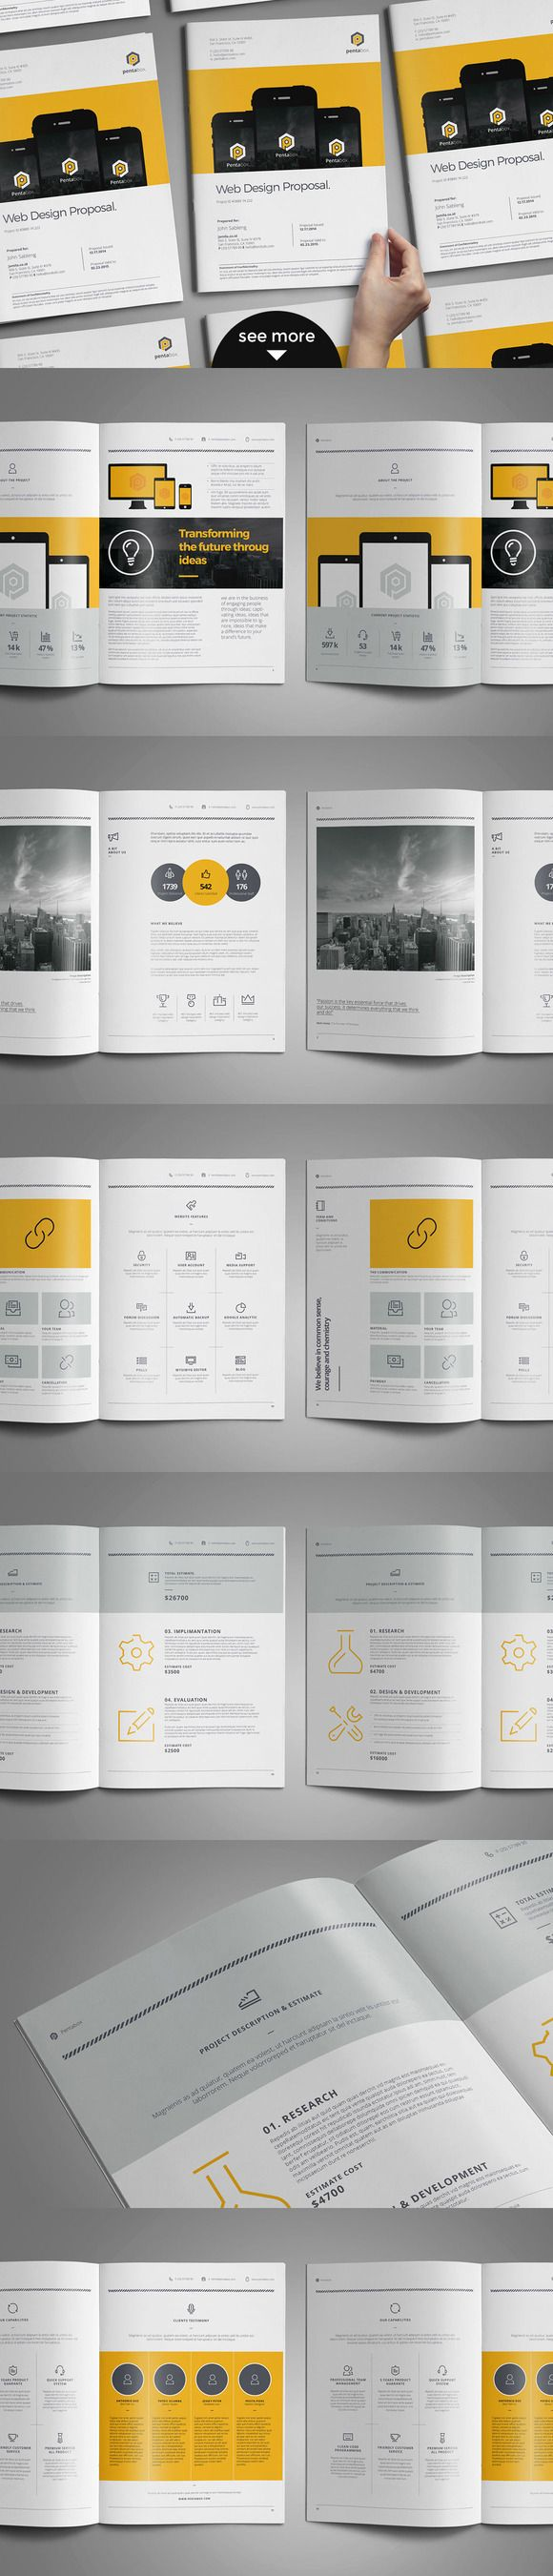 Proposal Templates · FREE DOWNLOAD! Web Design Proposal By Broluthfi On  Creative Market